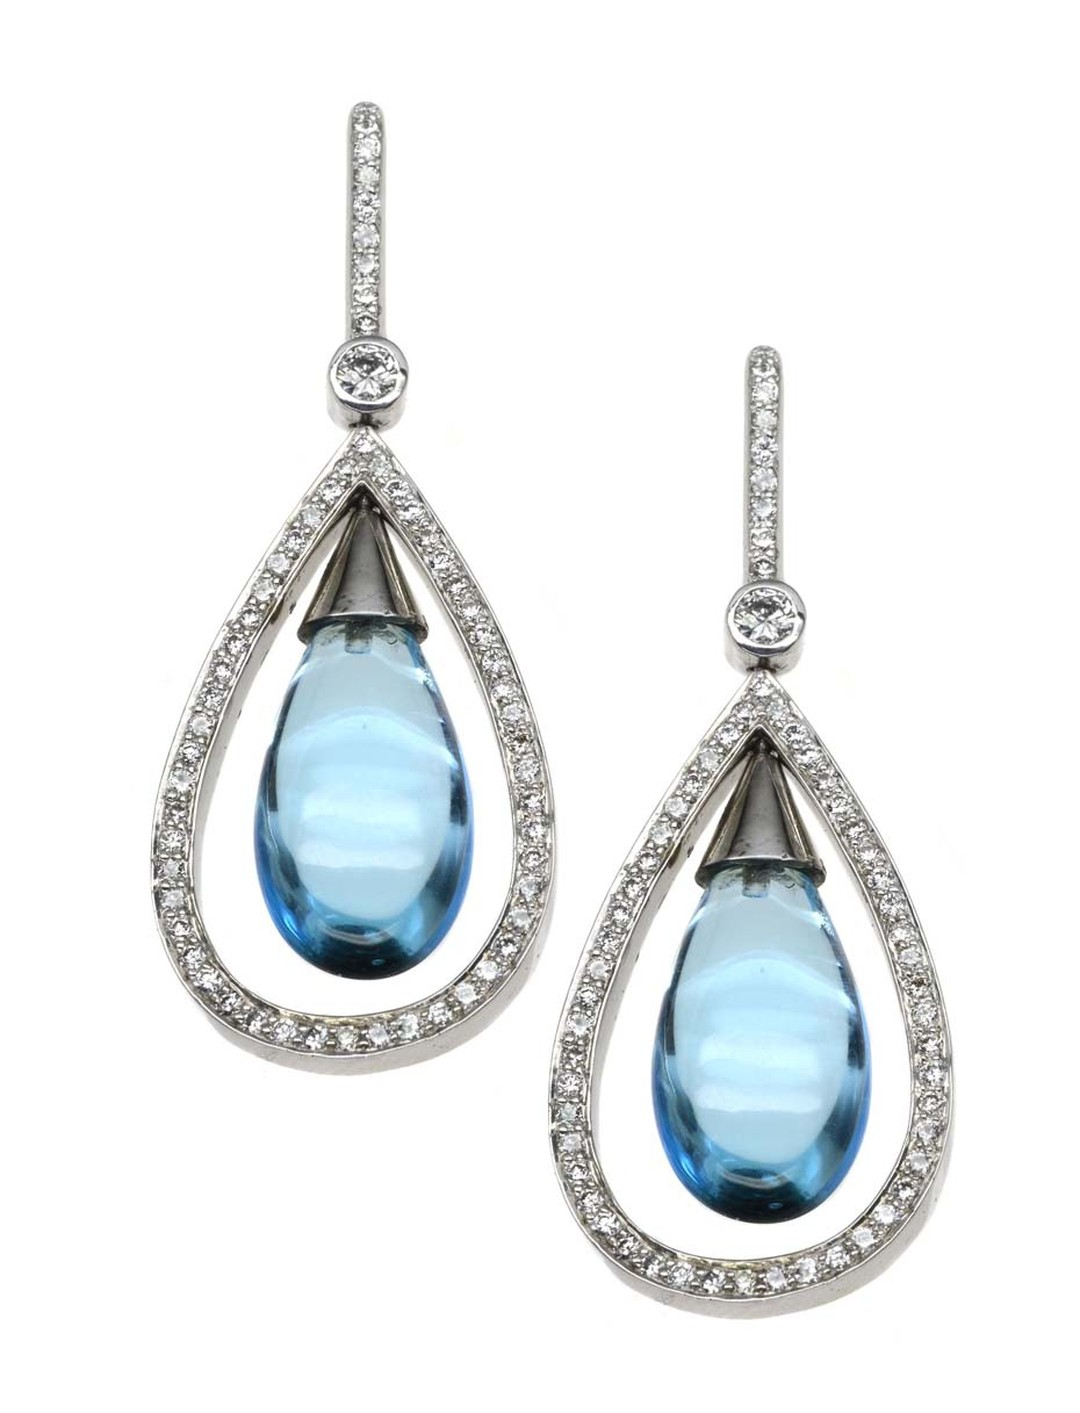 Kevin Charles earrings in white gold with blue topaz and diamonds (£5,250)